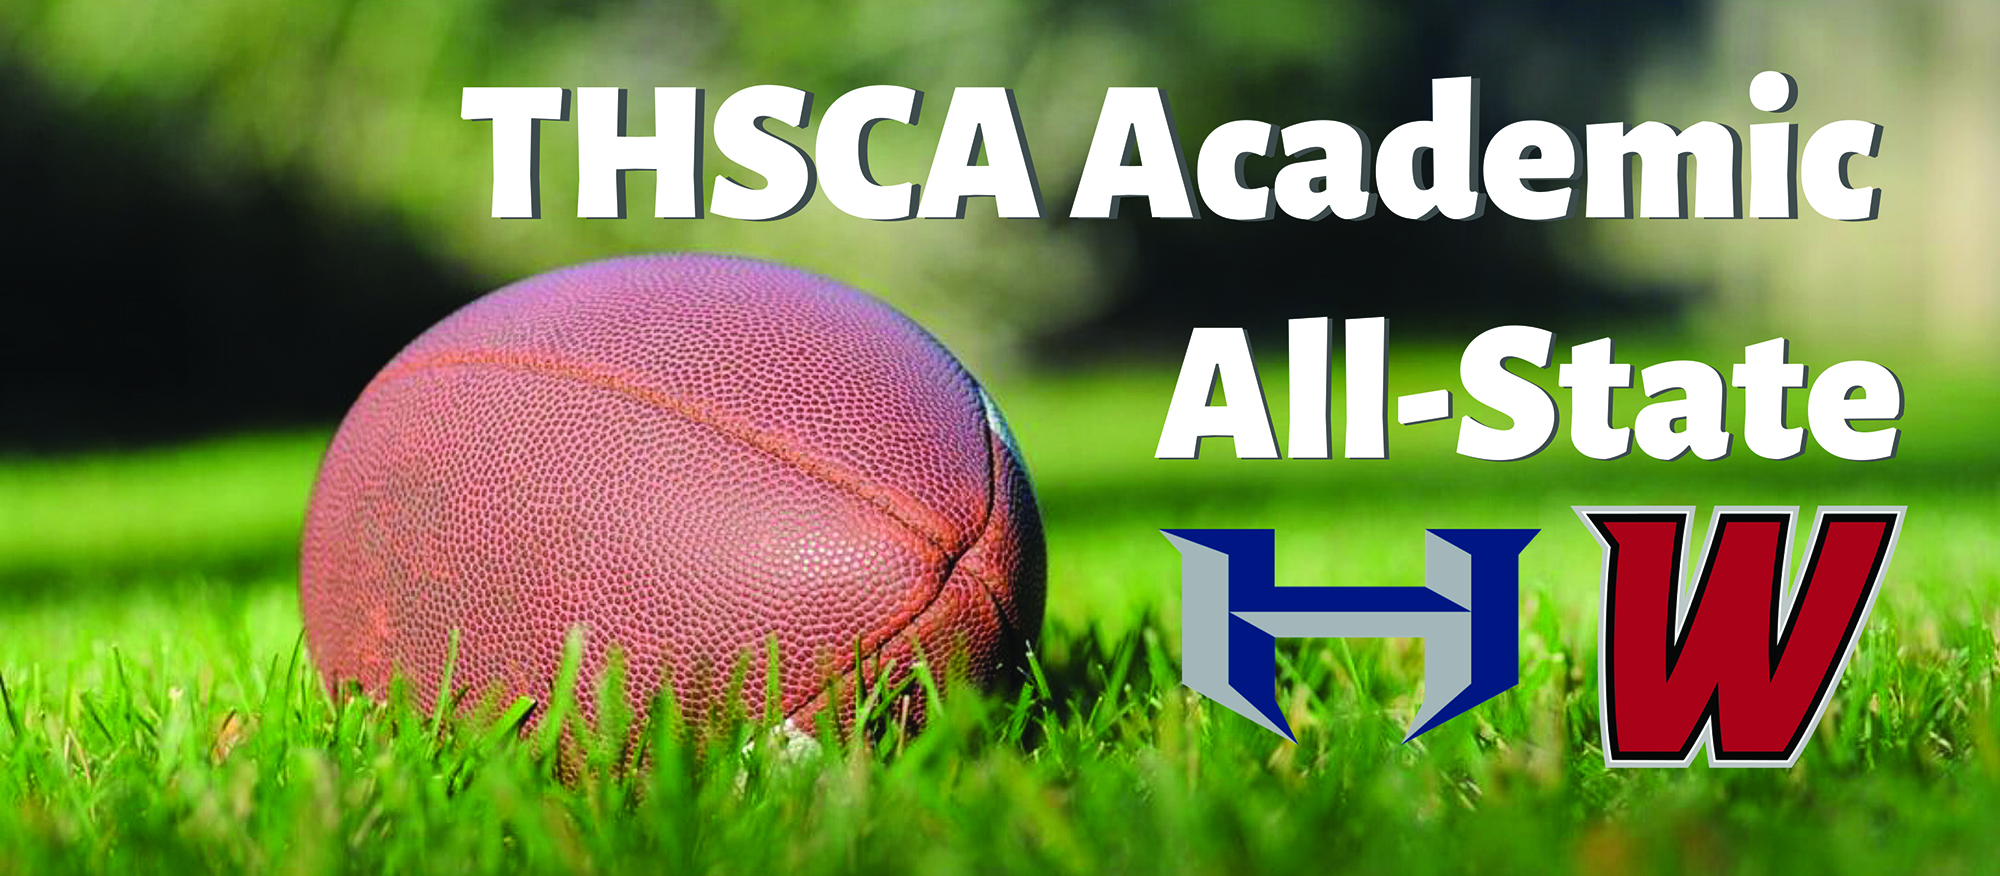 THSCA Academic All-State